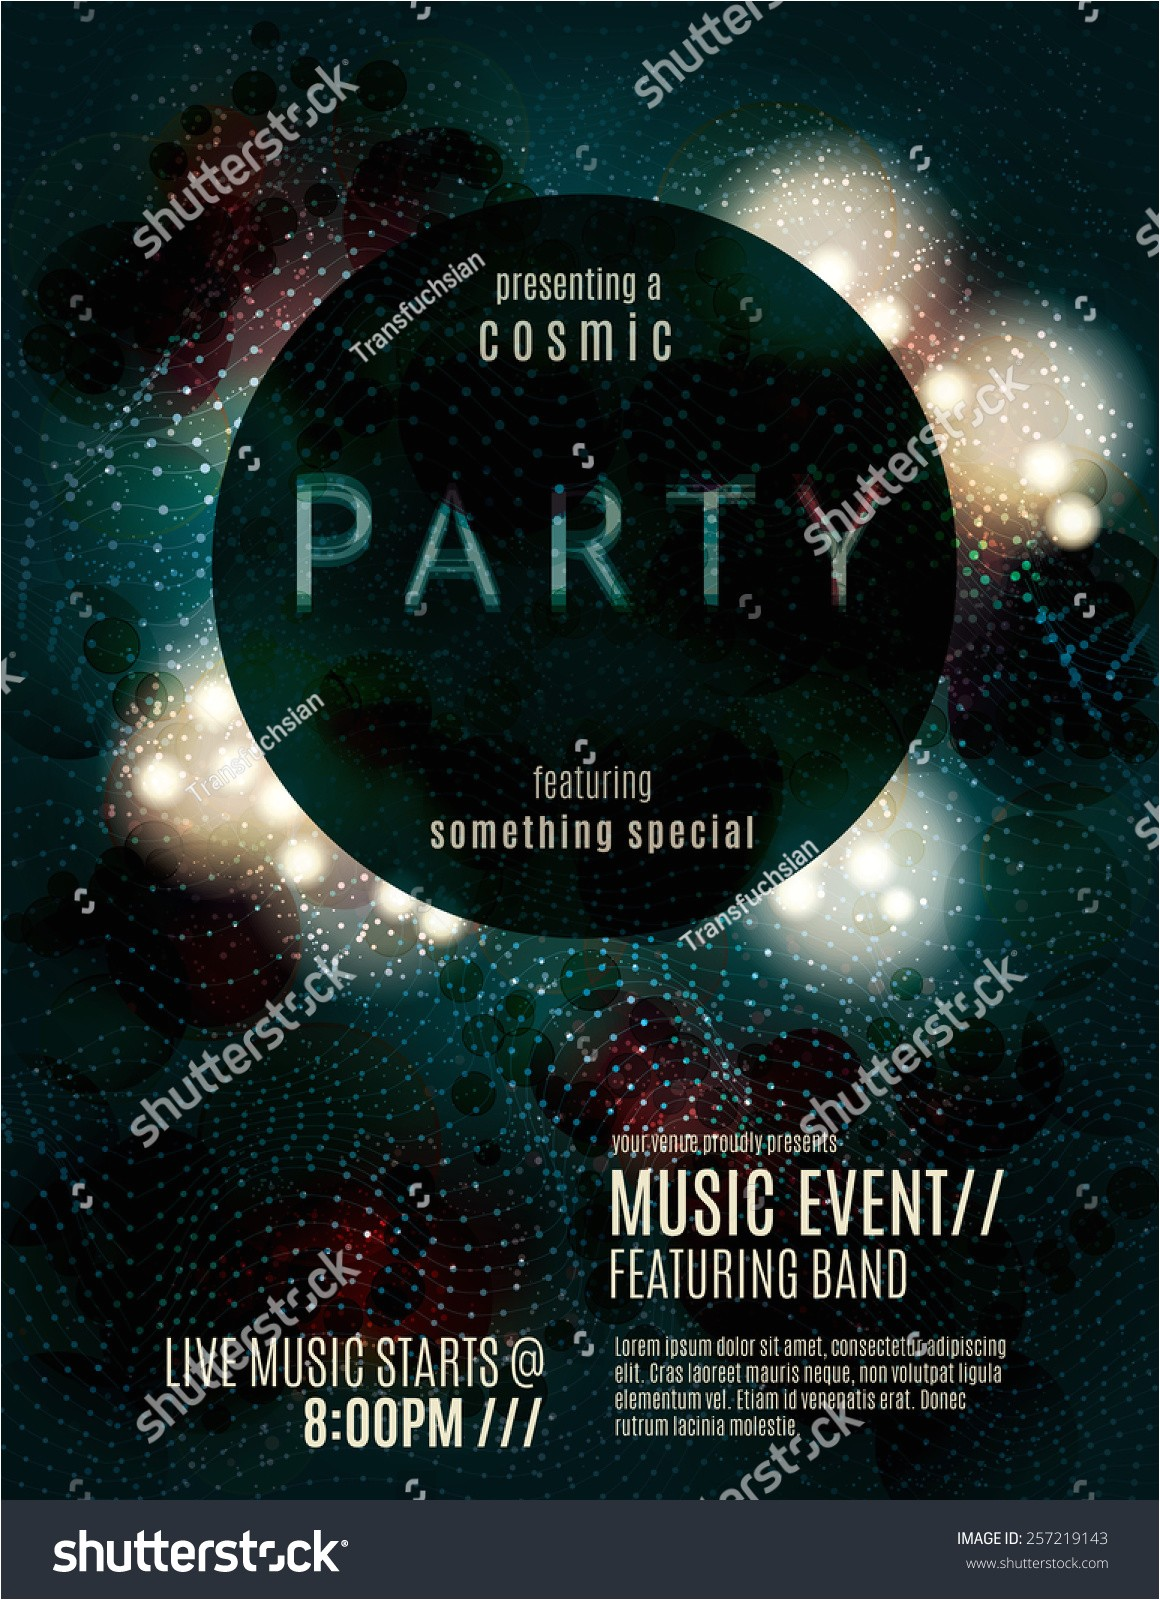 stock vector dark eclipse party invitation poster or flyer template design with glowing glitter effects